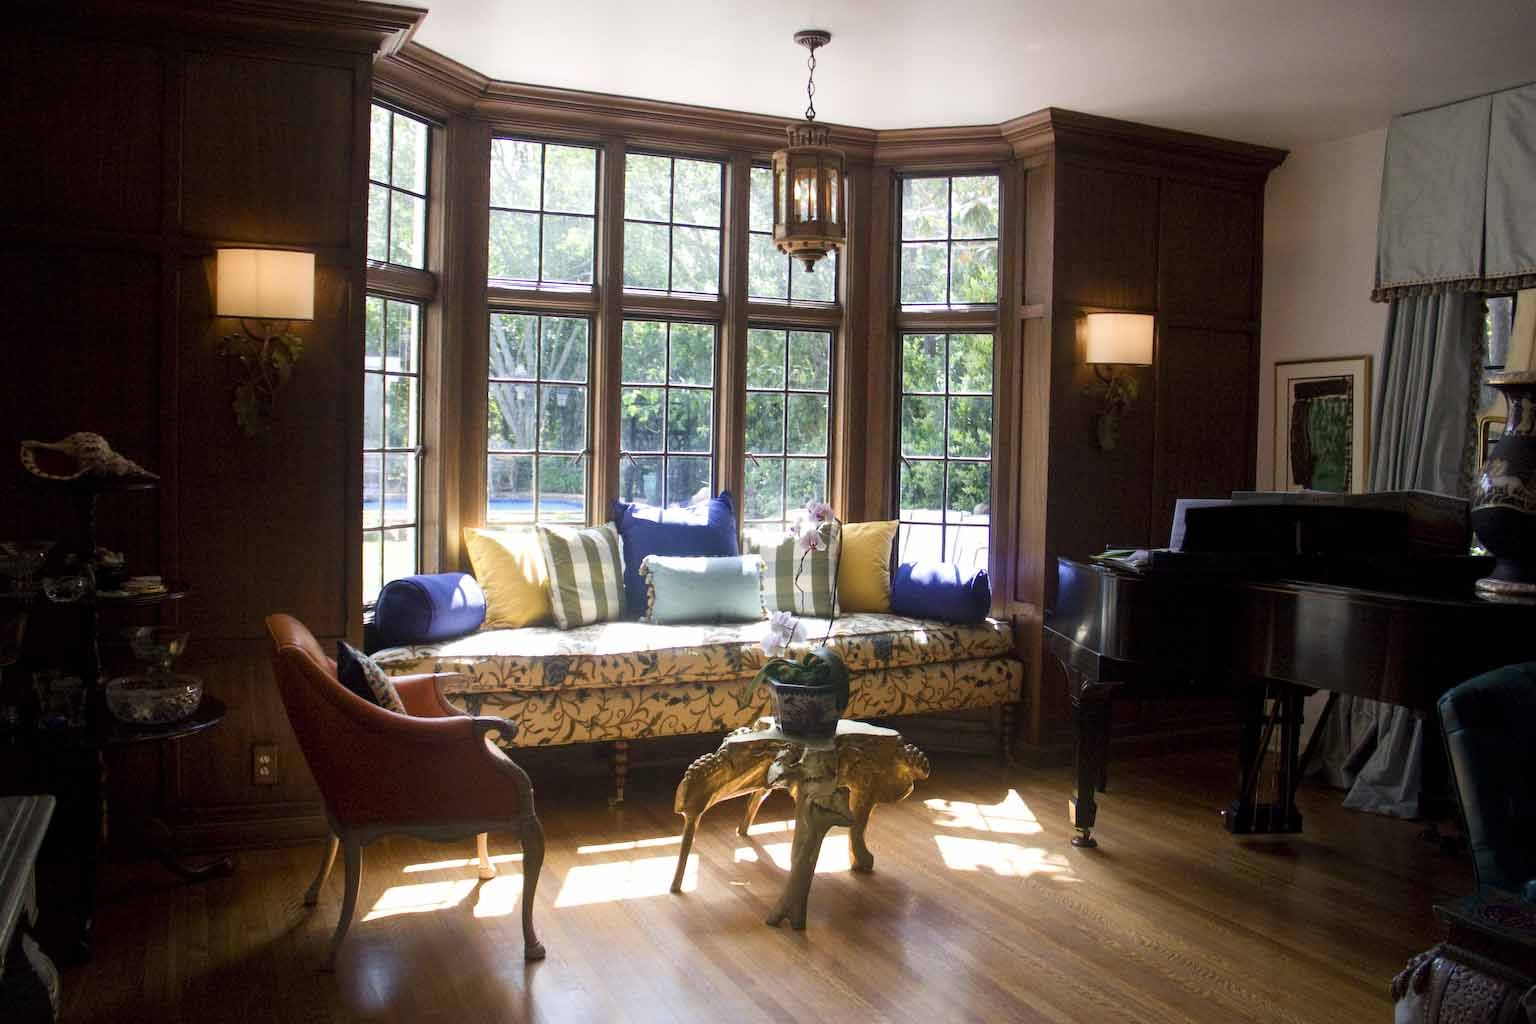 Tudor Revival Interiors 1930's english tudor home design - google search | windows